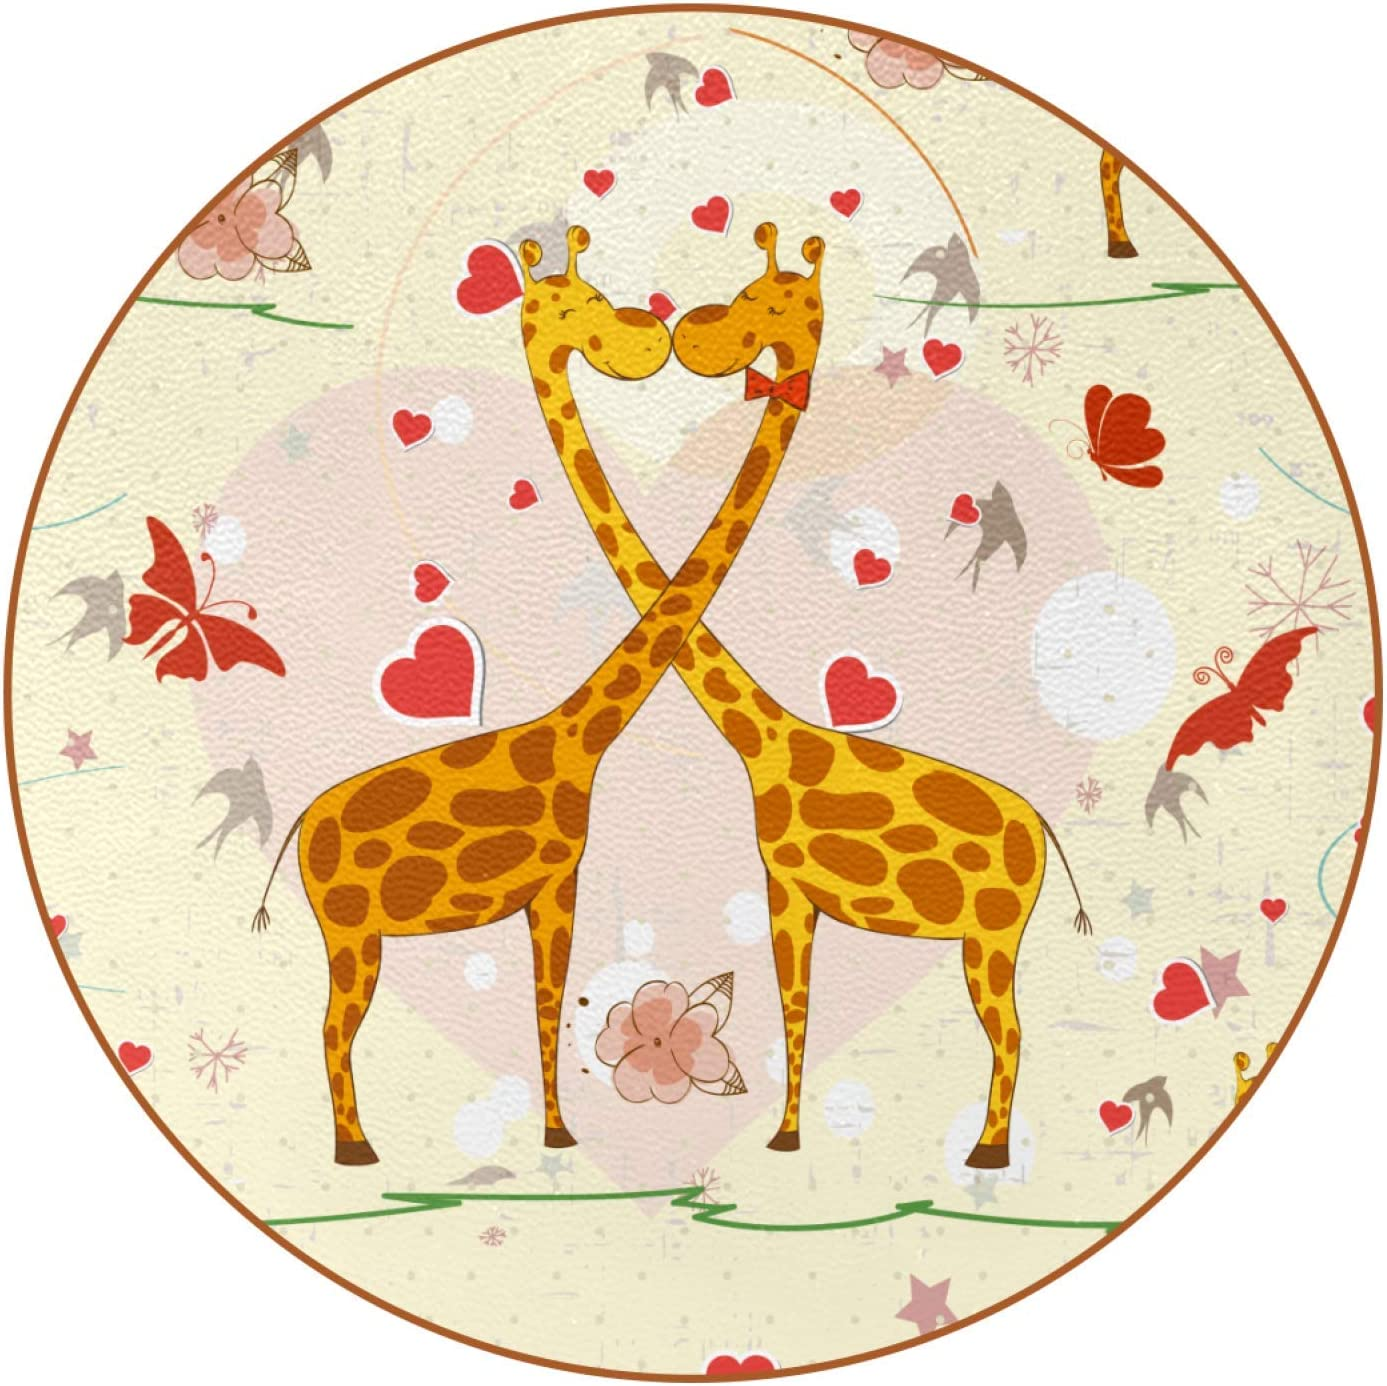 Custom Coasters Giraffe Valentine's Day Drink Coaster (6-Piece Set), Housewarming Hostess Gifts Decor, Wedding Registry, Room Decorations, Customizable Picture and Text 4.3 in